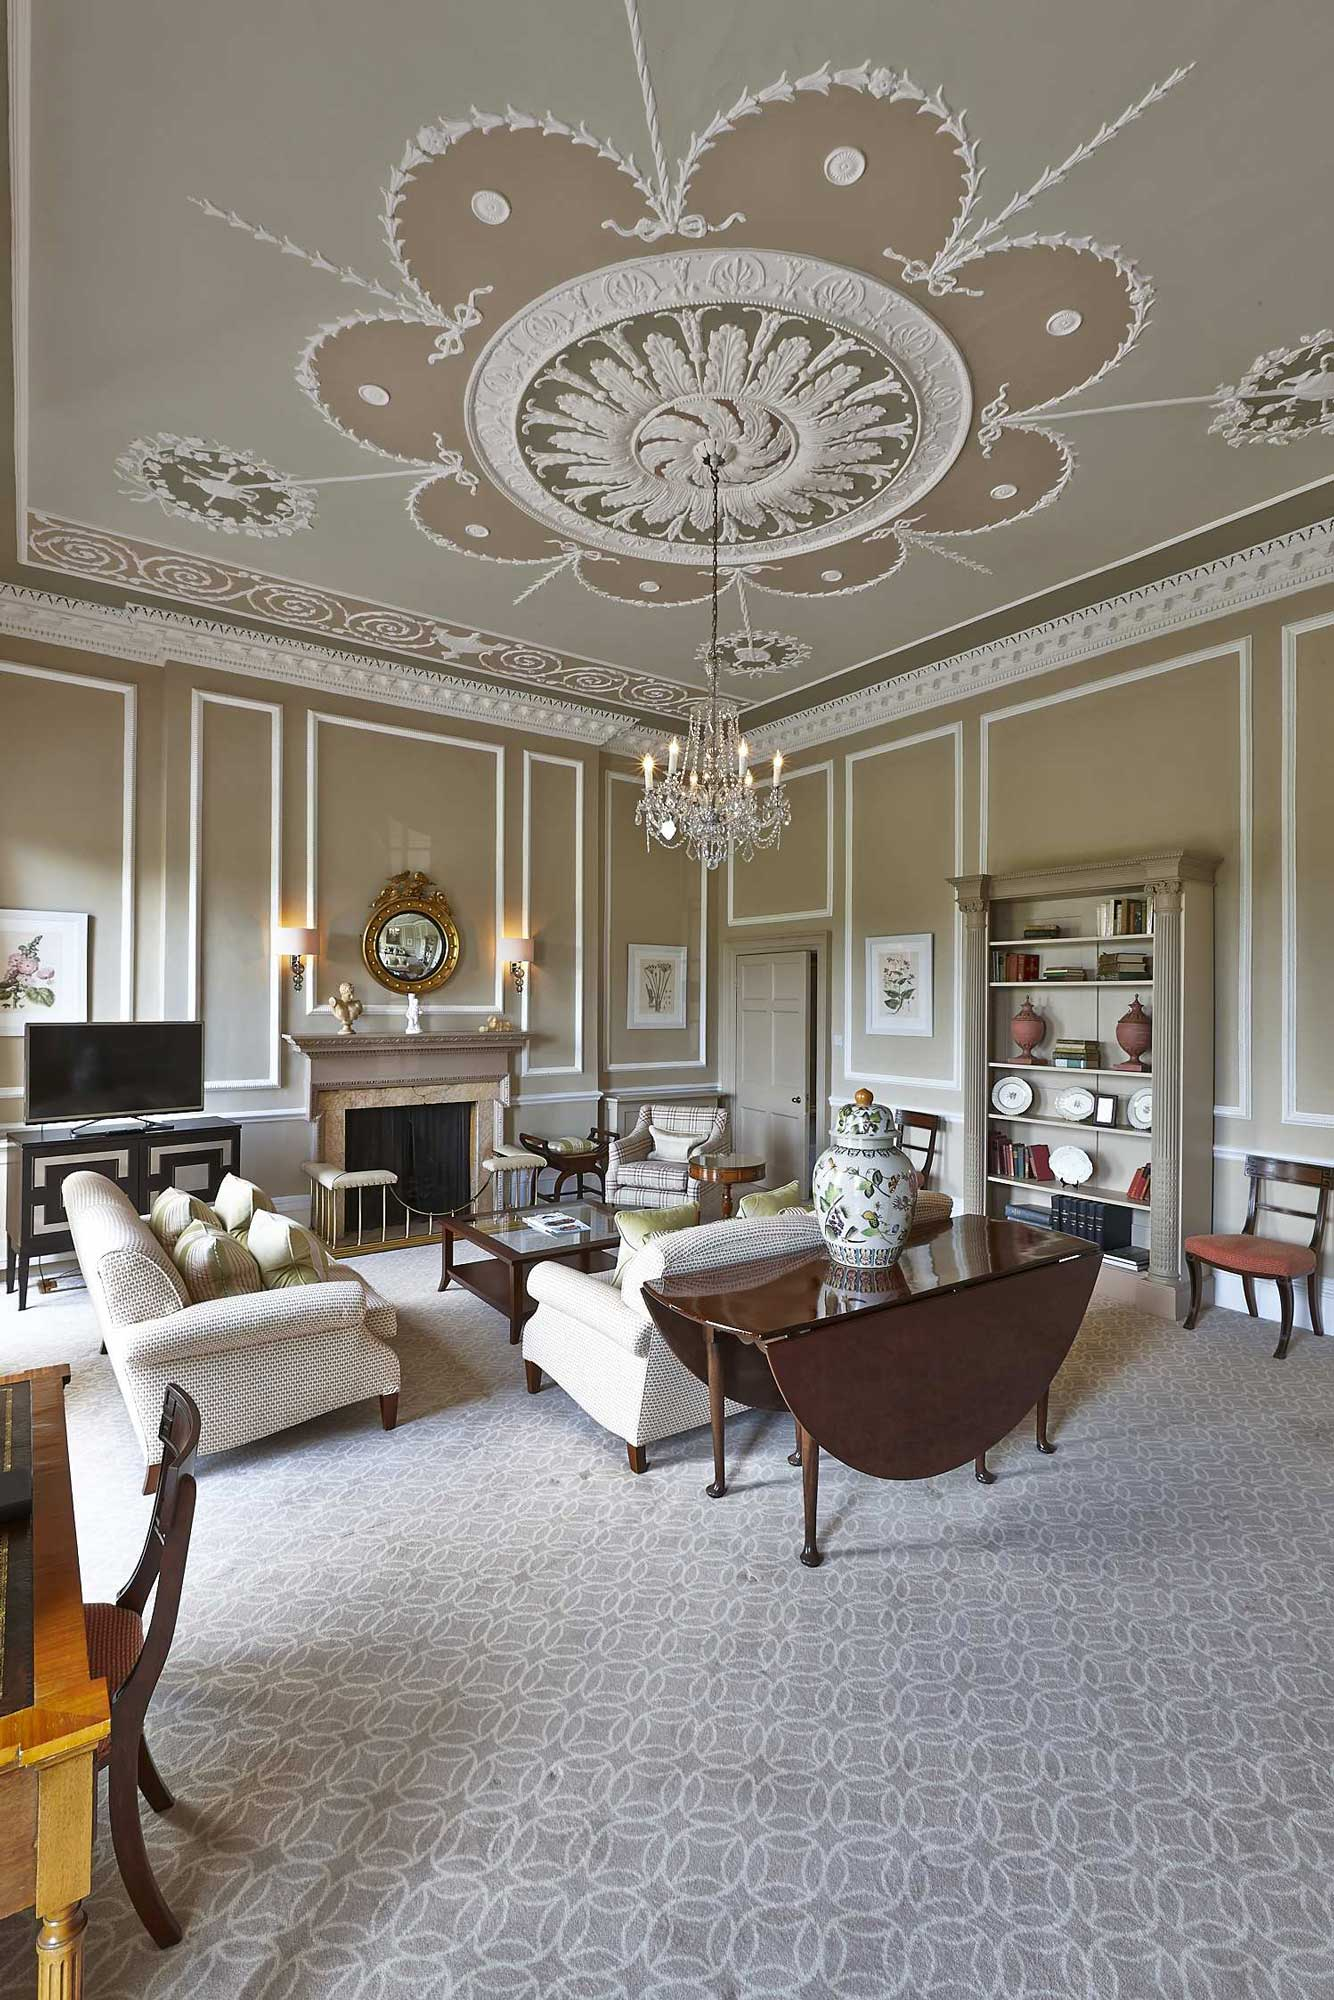 Interior photograph of Sir Percy Blakeney Suite at Royal Crescent Hotel, Bath | London Hotel Photographer